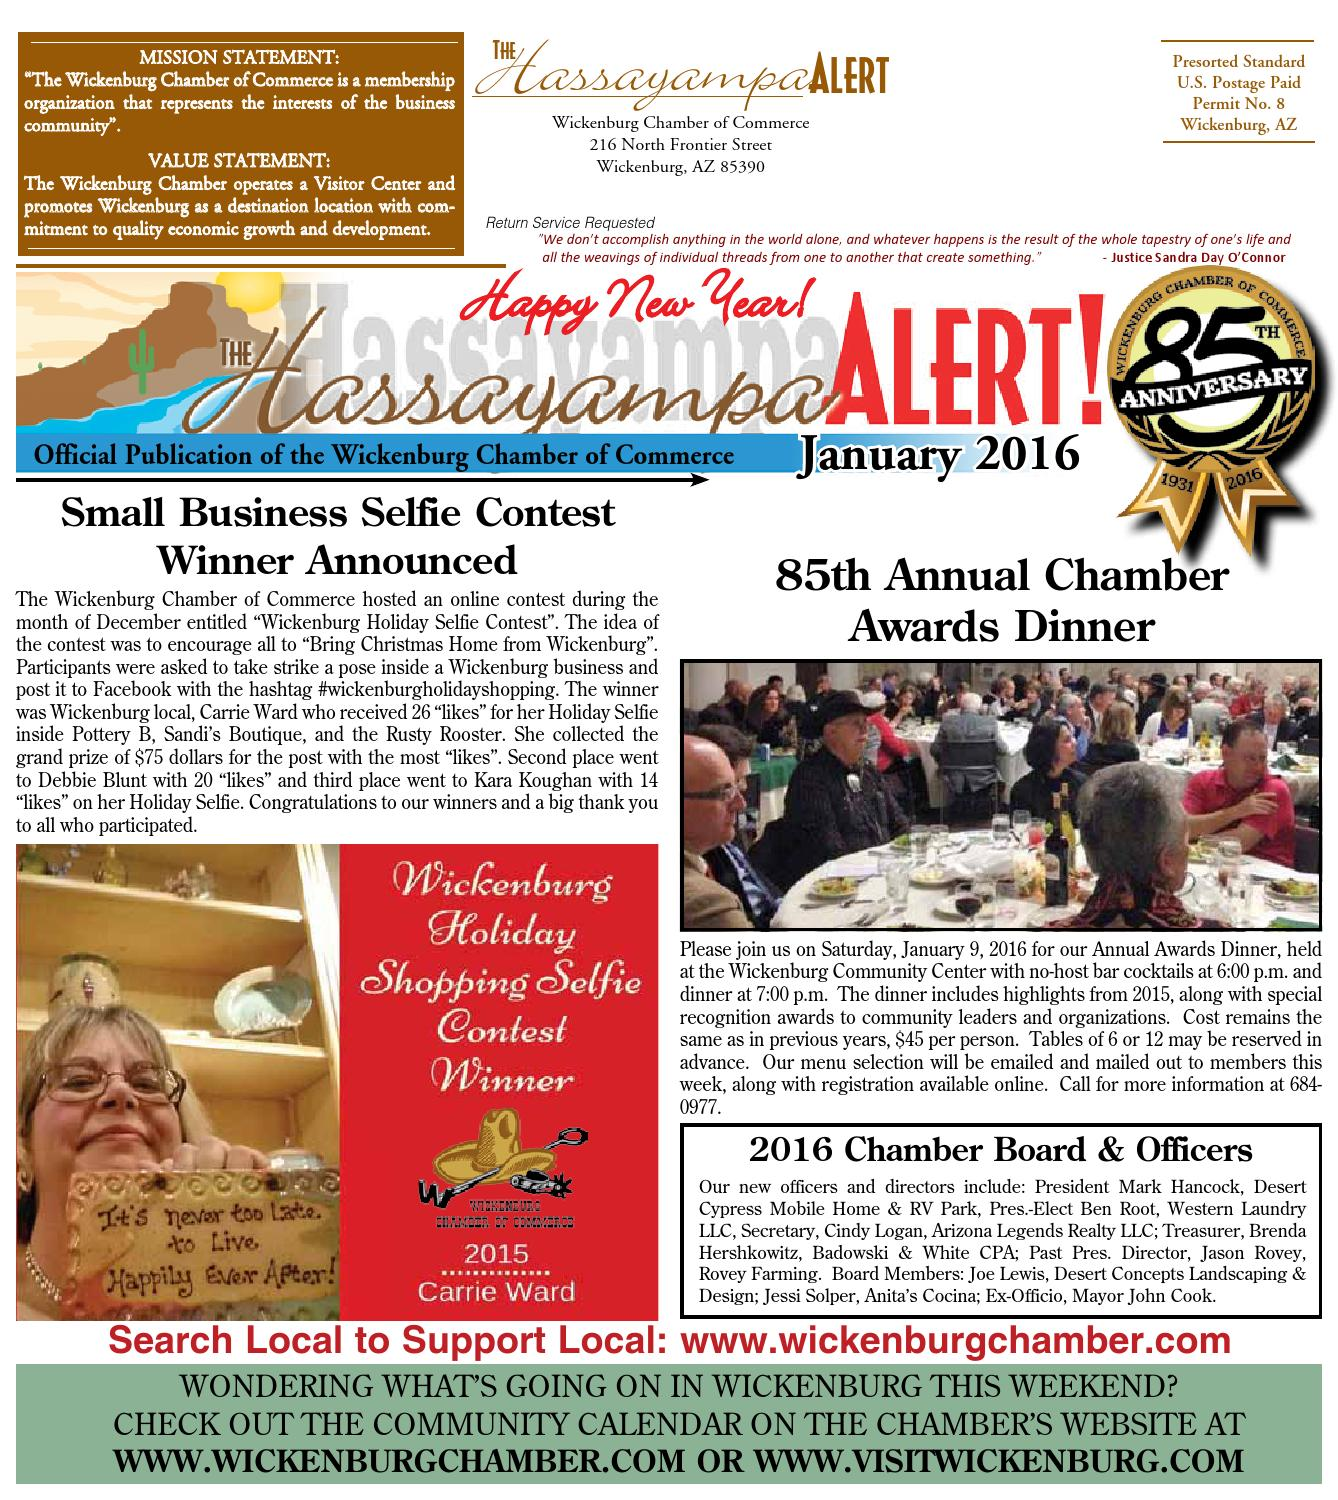 January Hassayampa Alert By Wickenburg Chamber Of Commerce